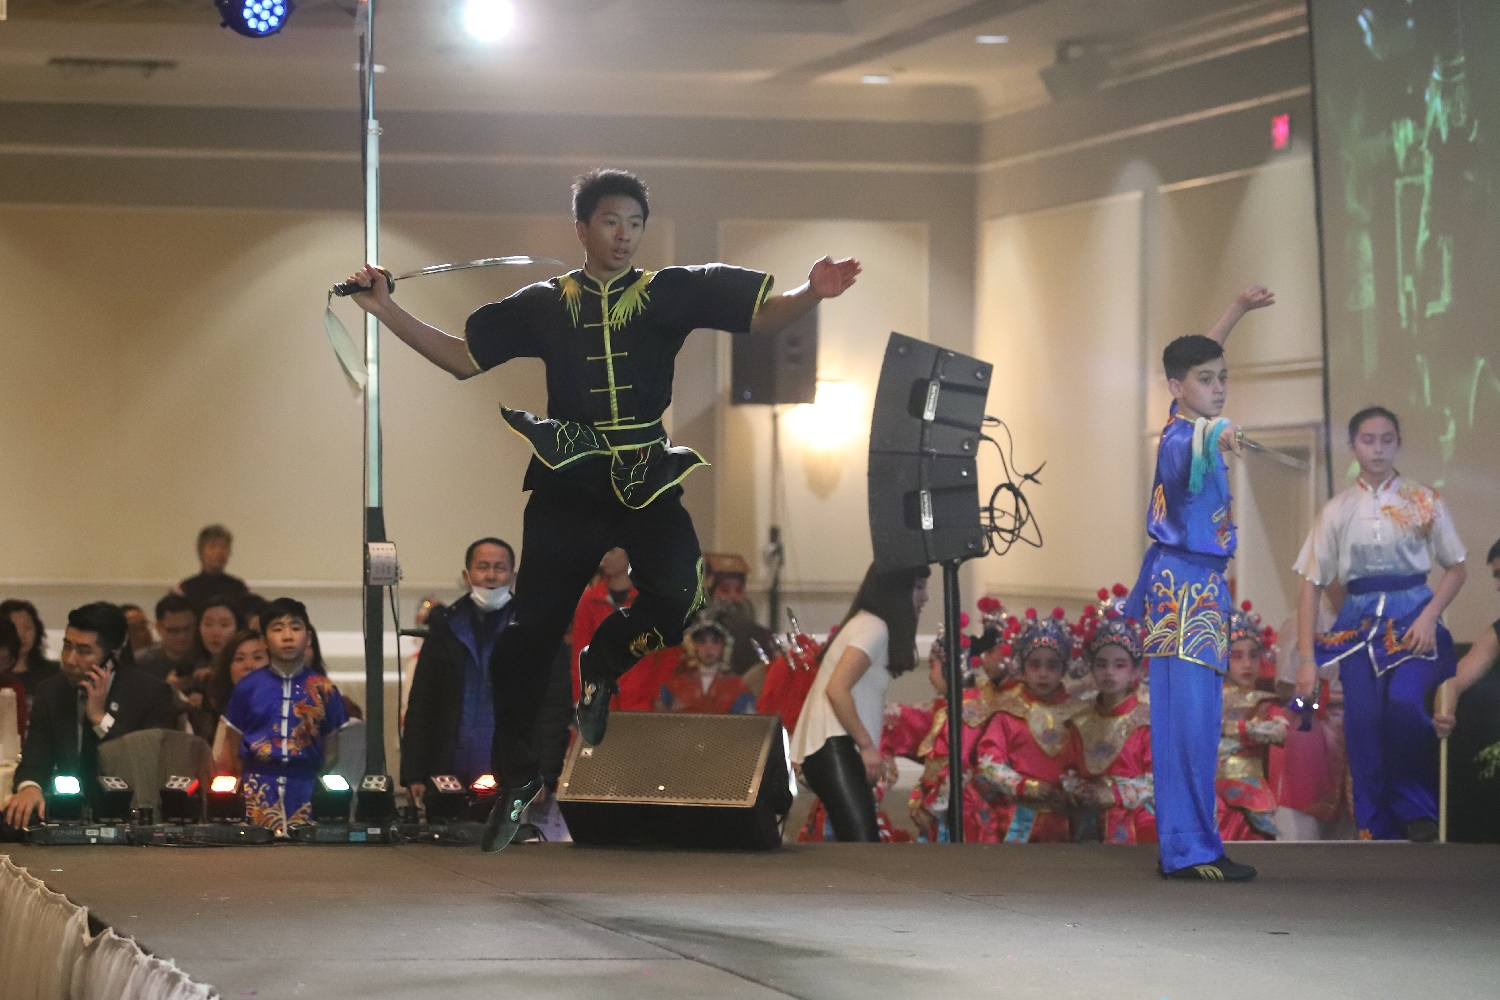 wayland-li-wushu-chinese-new-year-henan-association-canada-2019-20.jpg